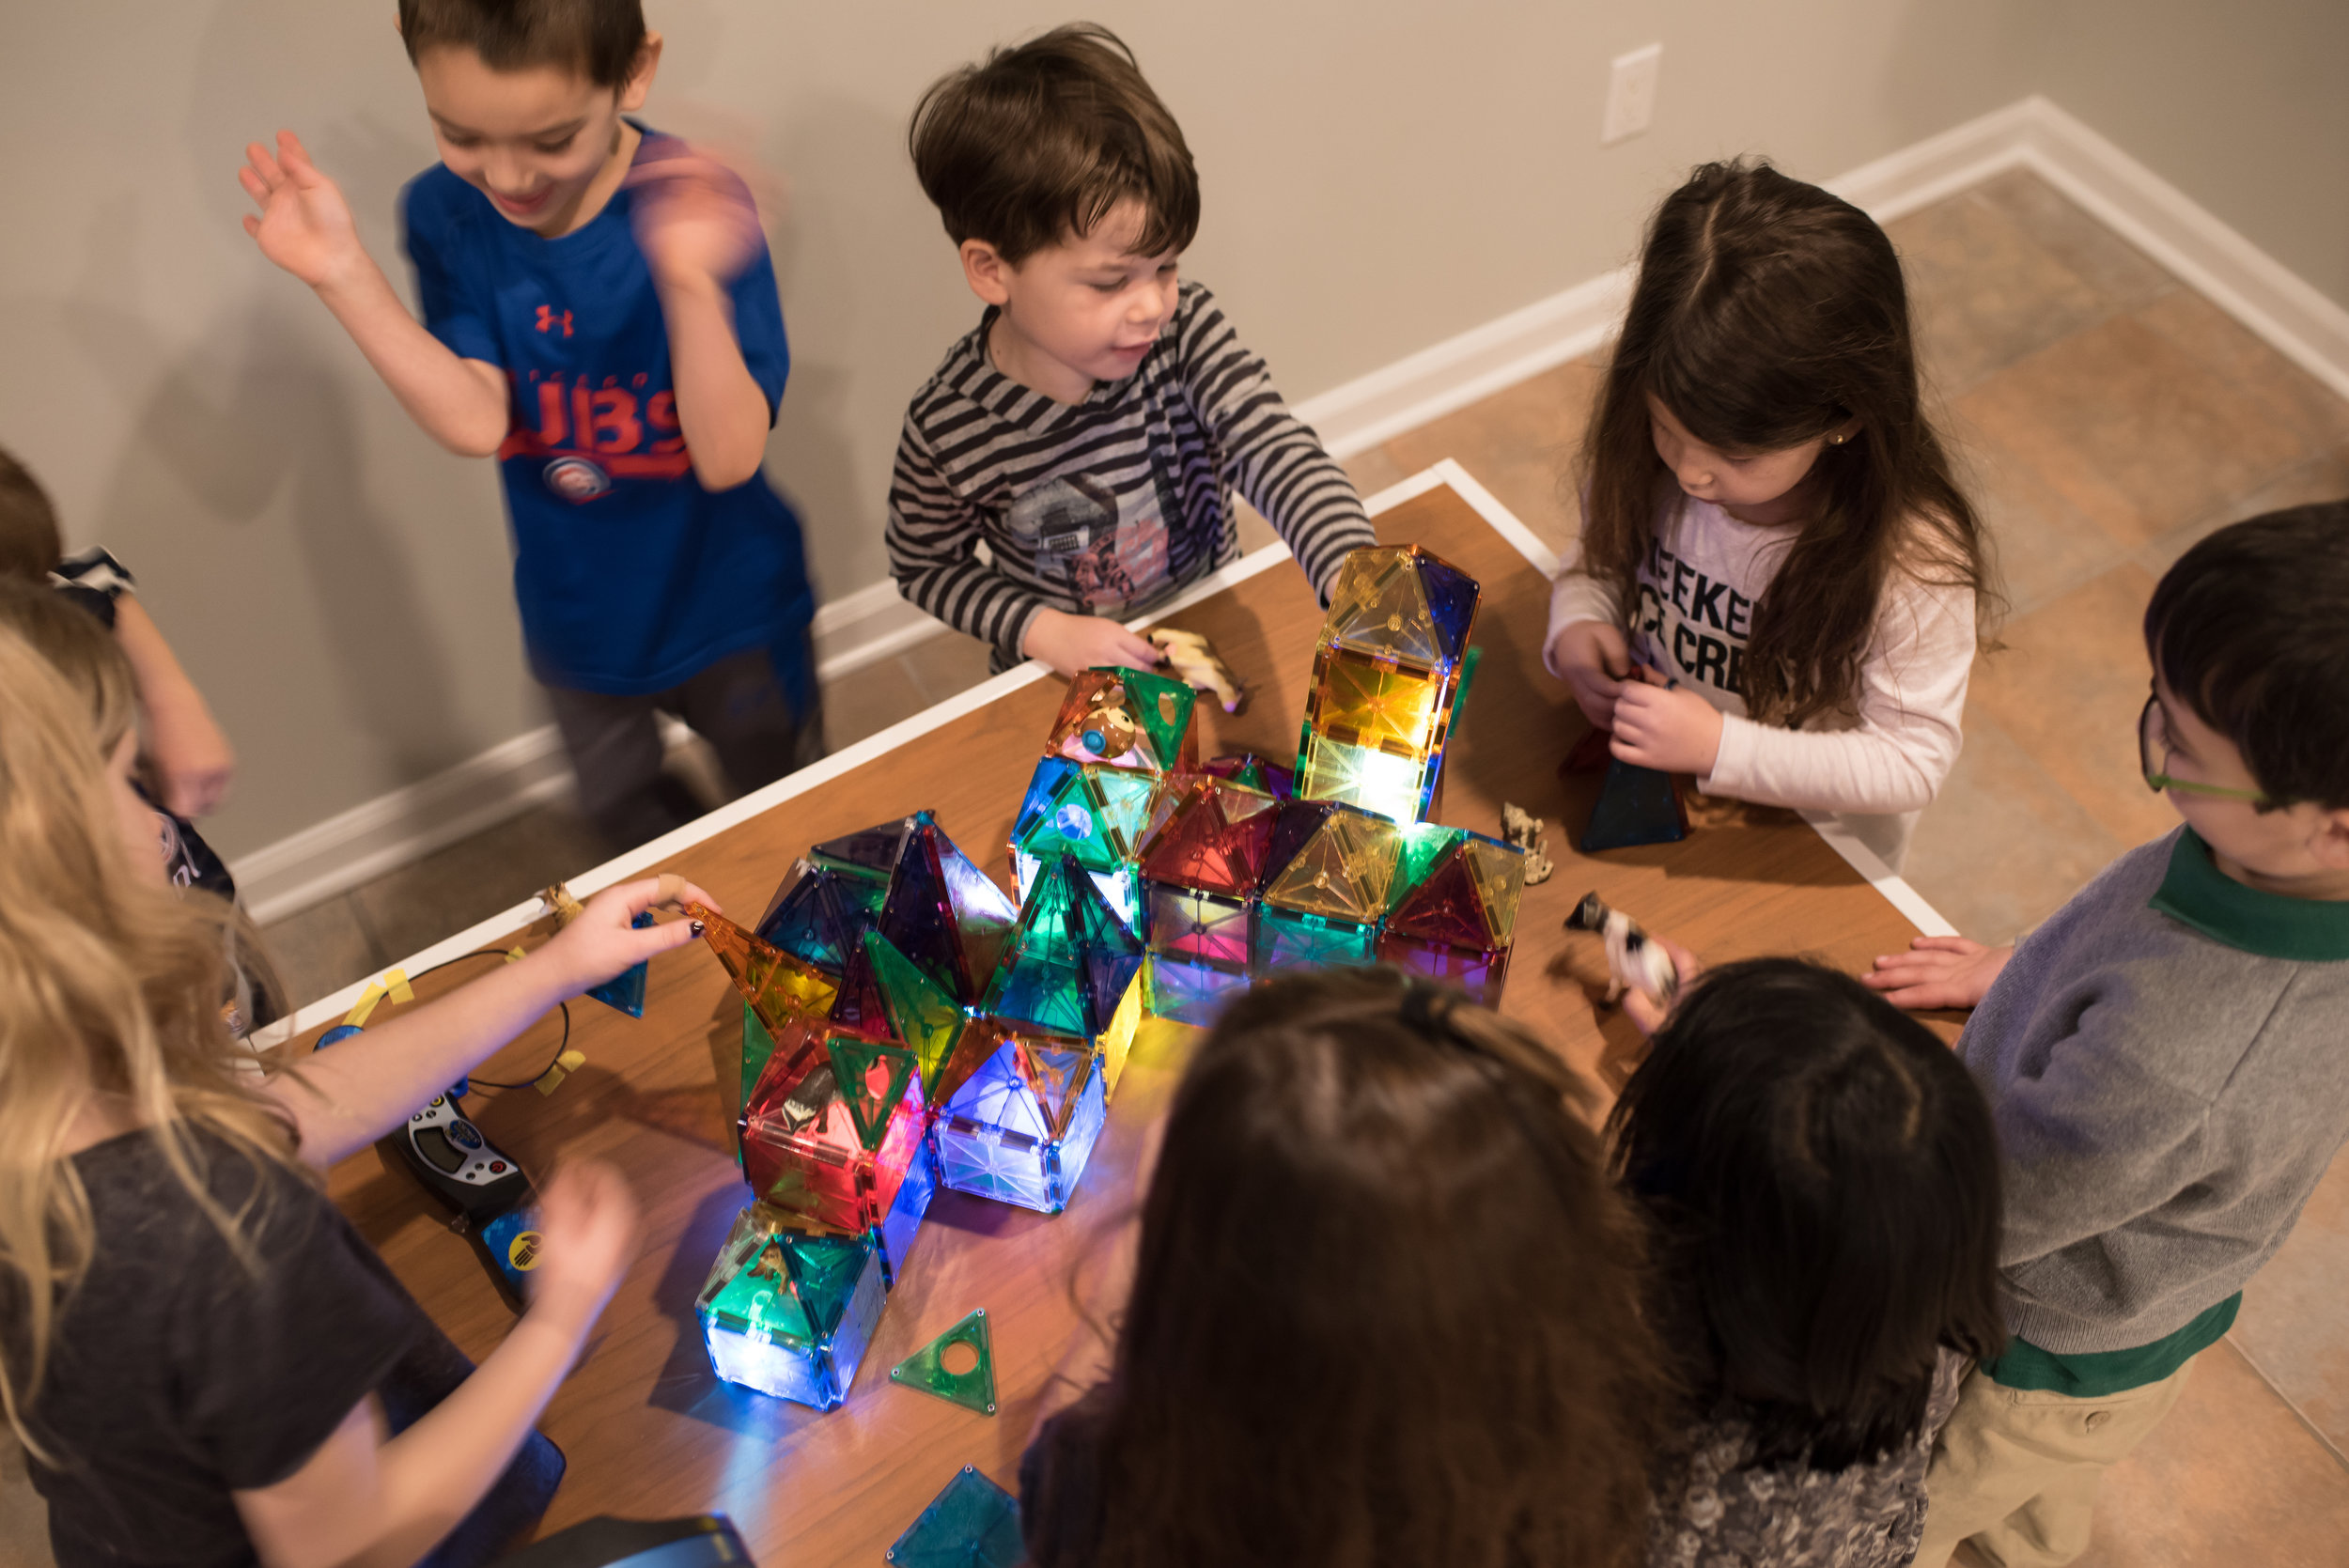 Children building an illuminated magnetic tile city.